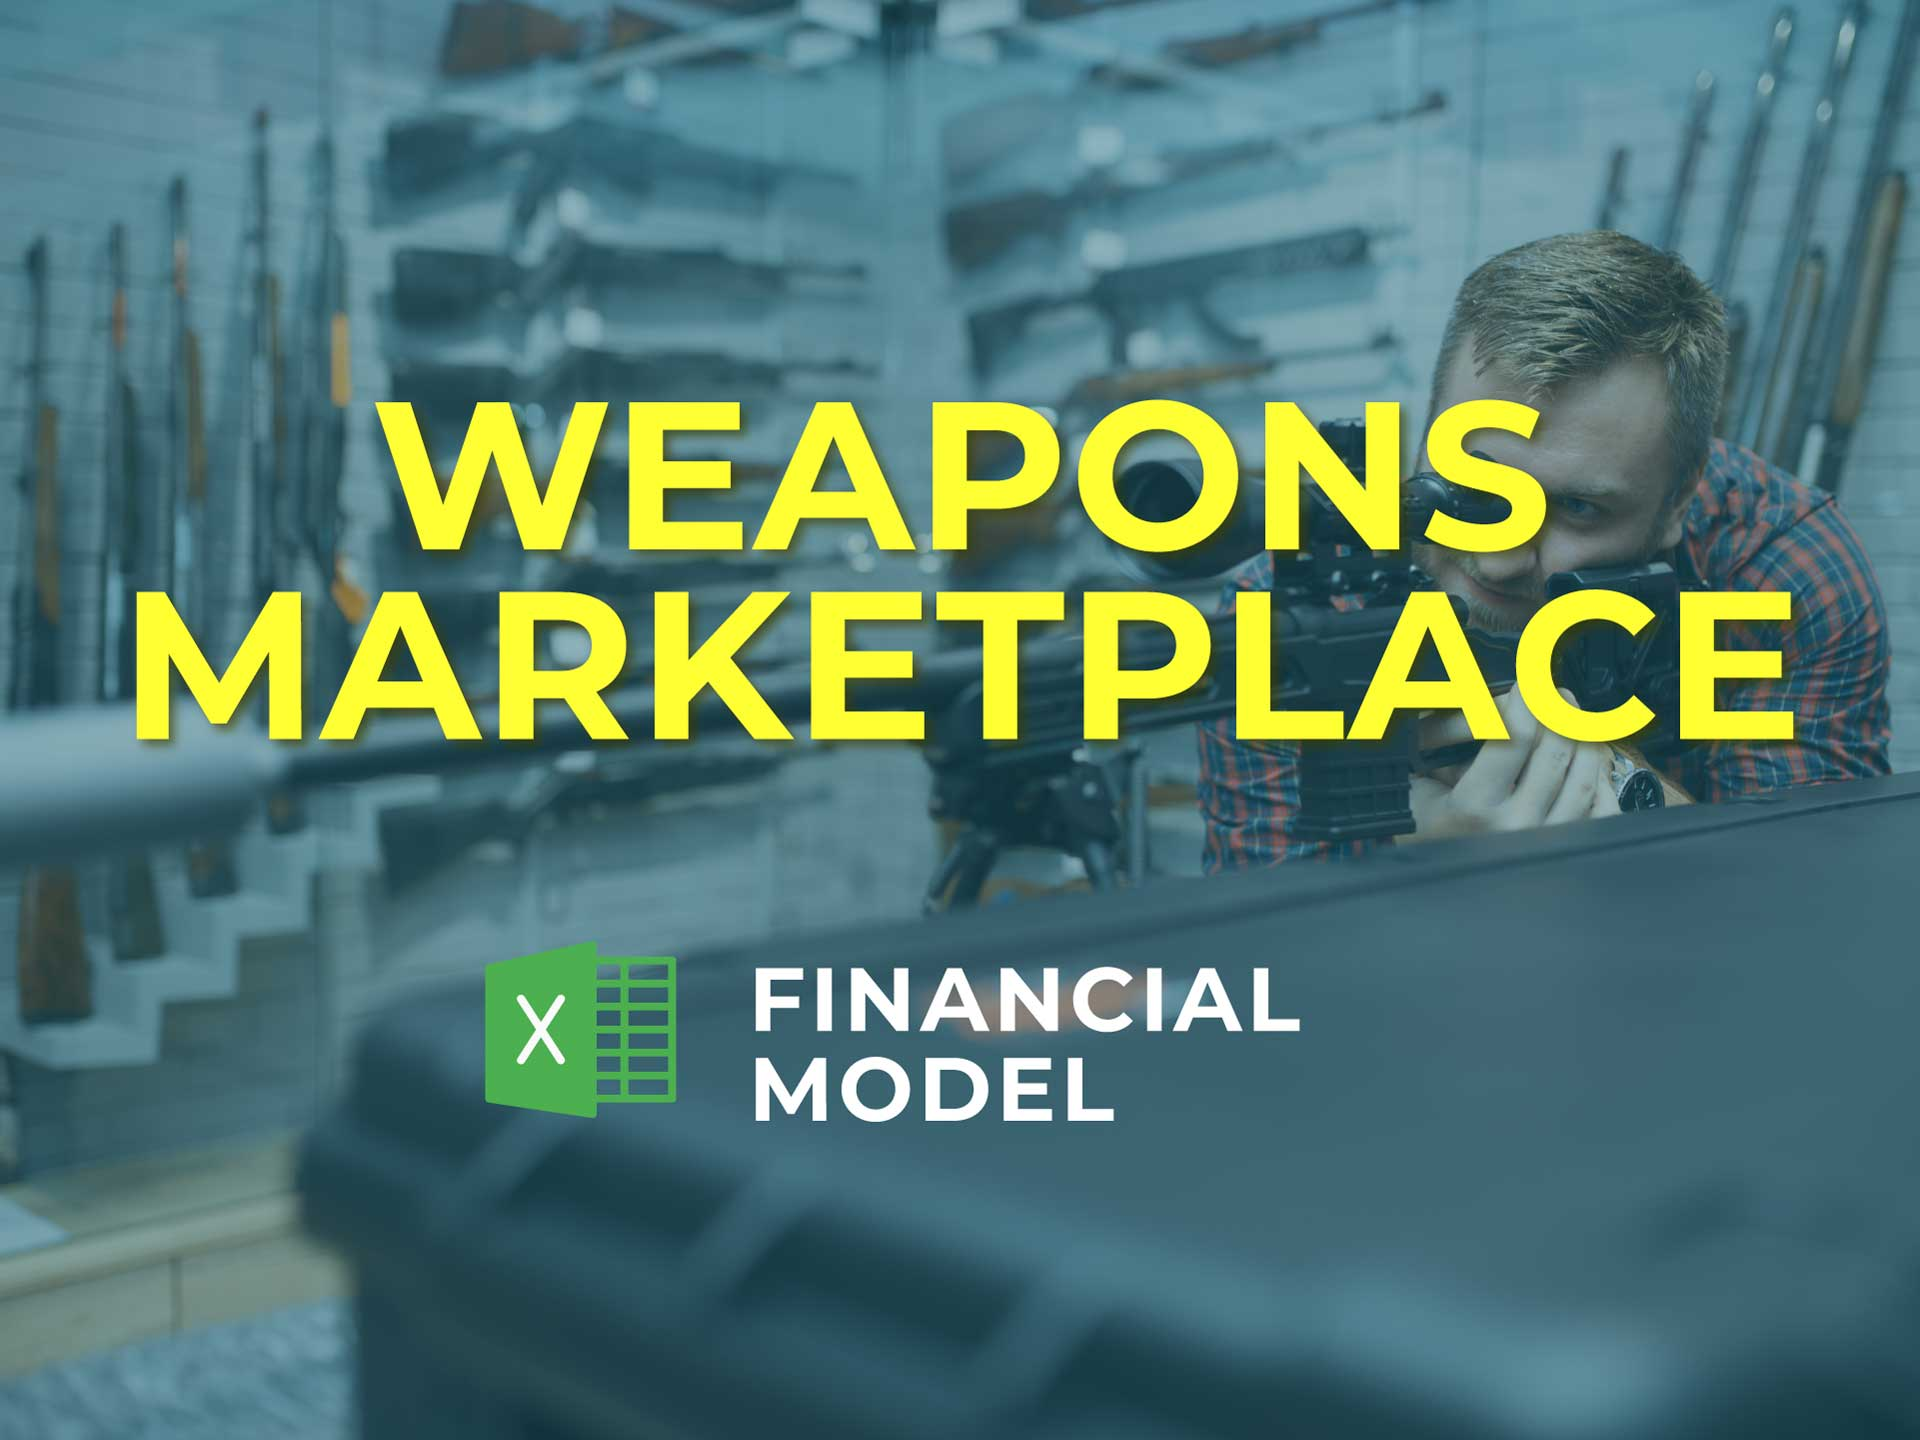 Weapons Marketplace